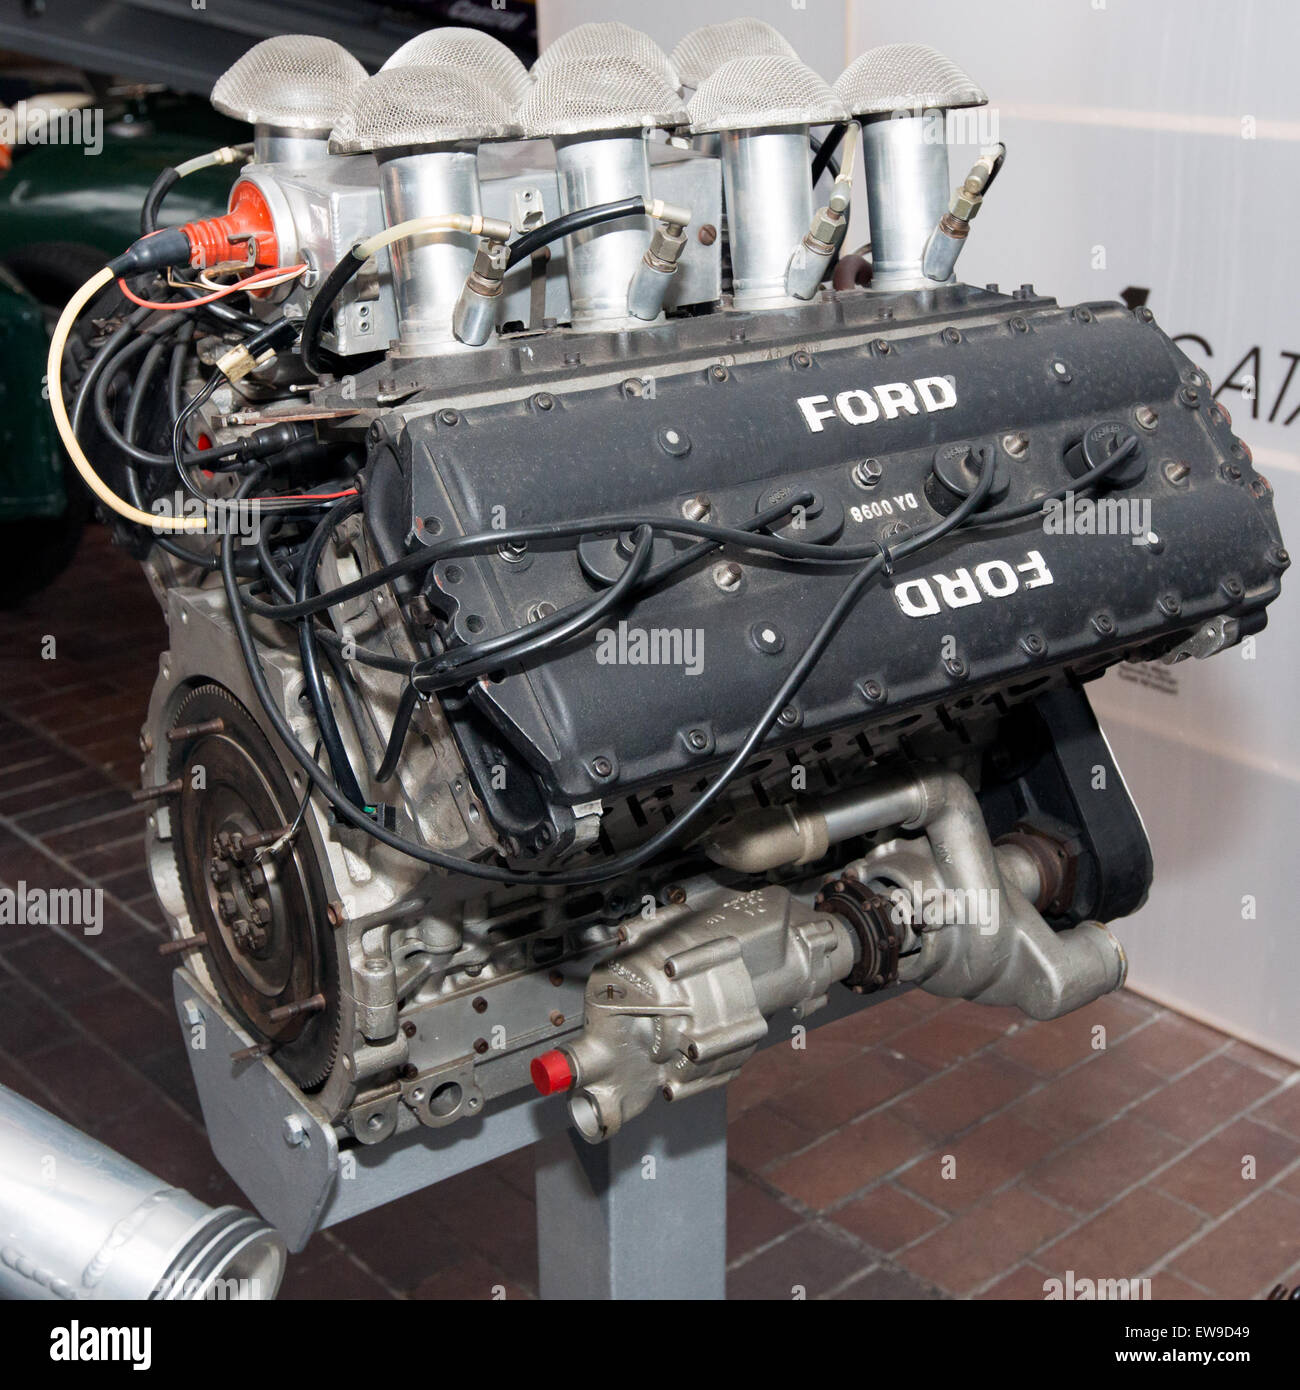 Ford cosworth dfv stock photos ford cosworth dfv stock for National motor club compensation plan